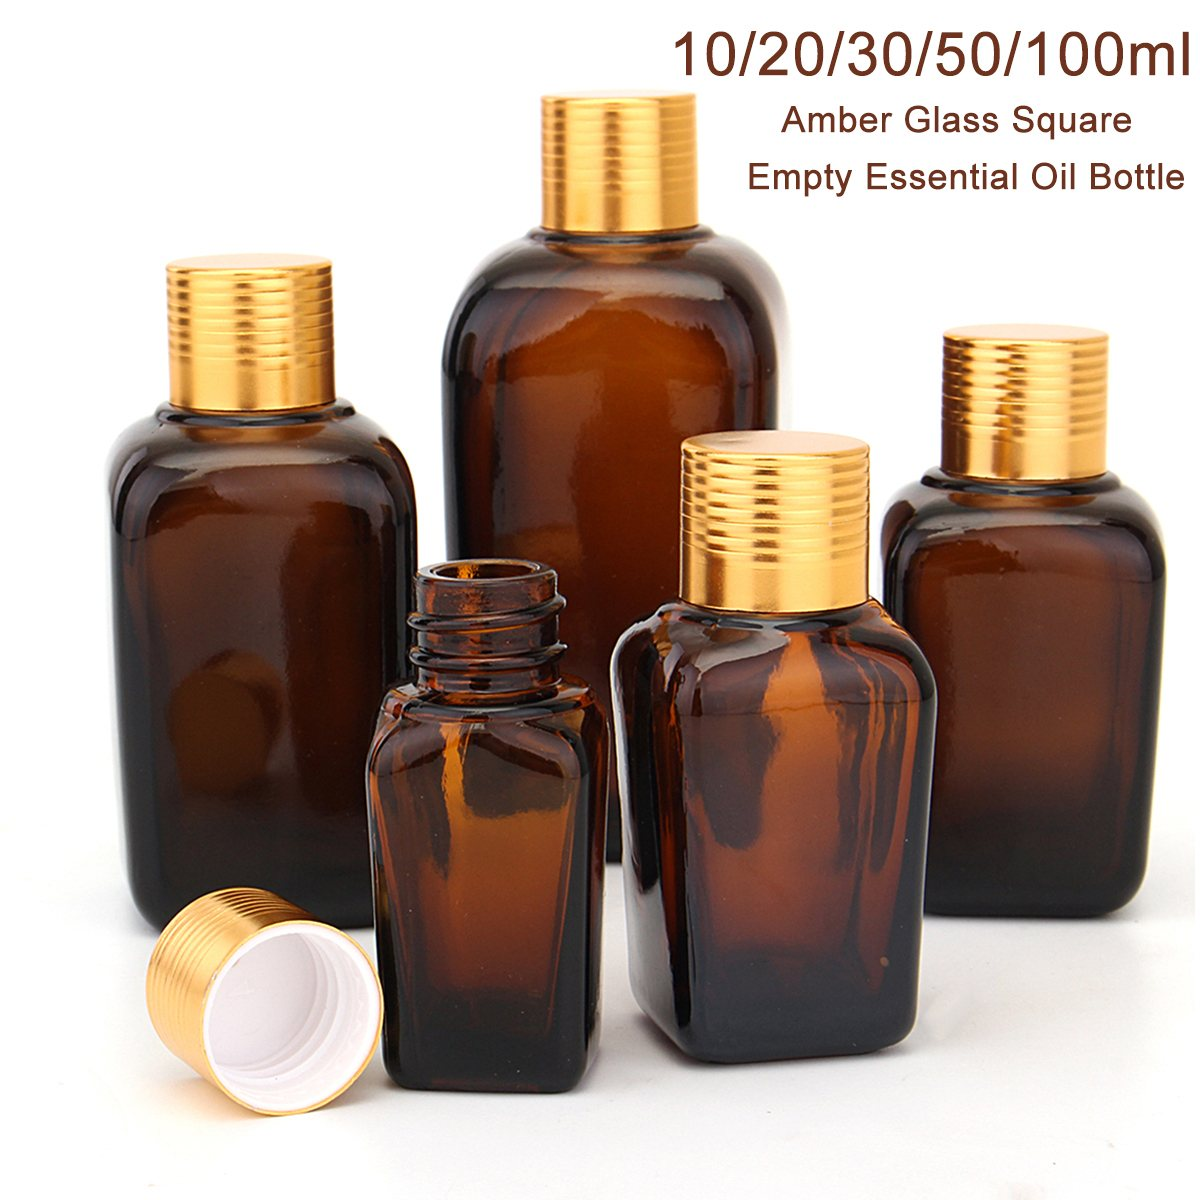 5PCS Square Empty Amber Glass Bottles 10/20/30/50/100ml Essential Oil Refillable Bottle Pot Portable Travel Body Cream Container 6pcs 1oz 30ml amber glass spray bottle w black fine mist sprayer refillable essential oil bottles empty cosmetic containers